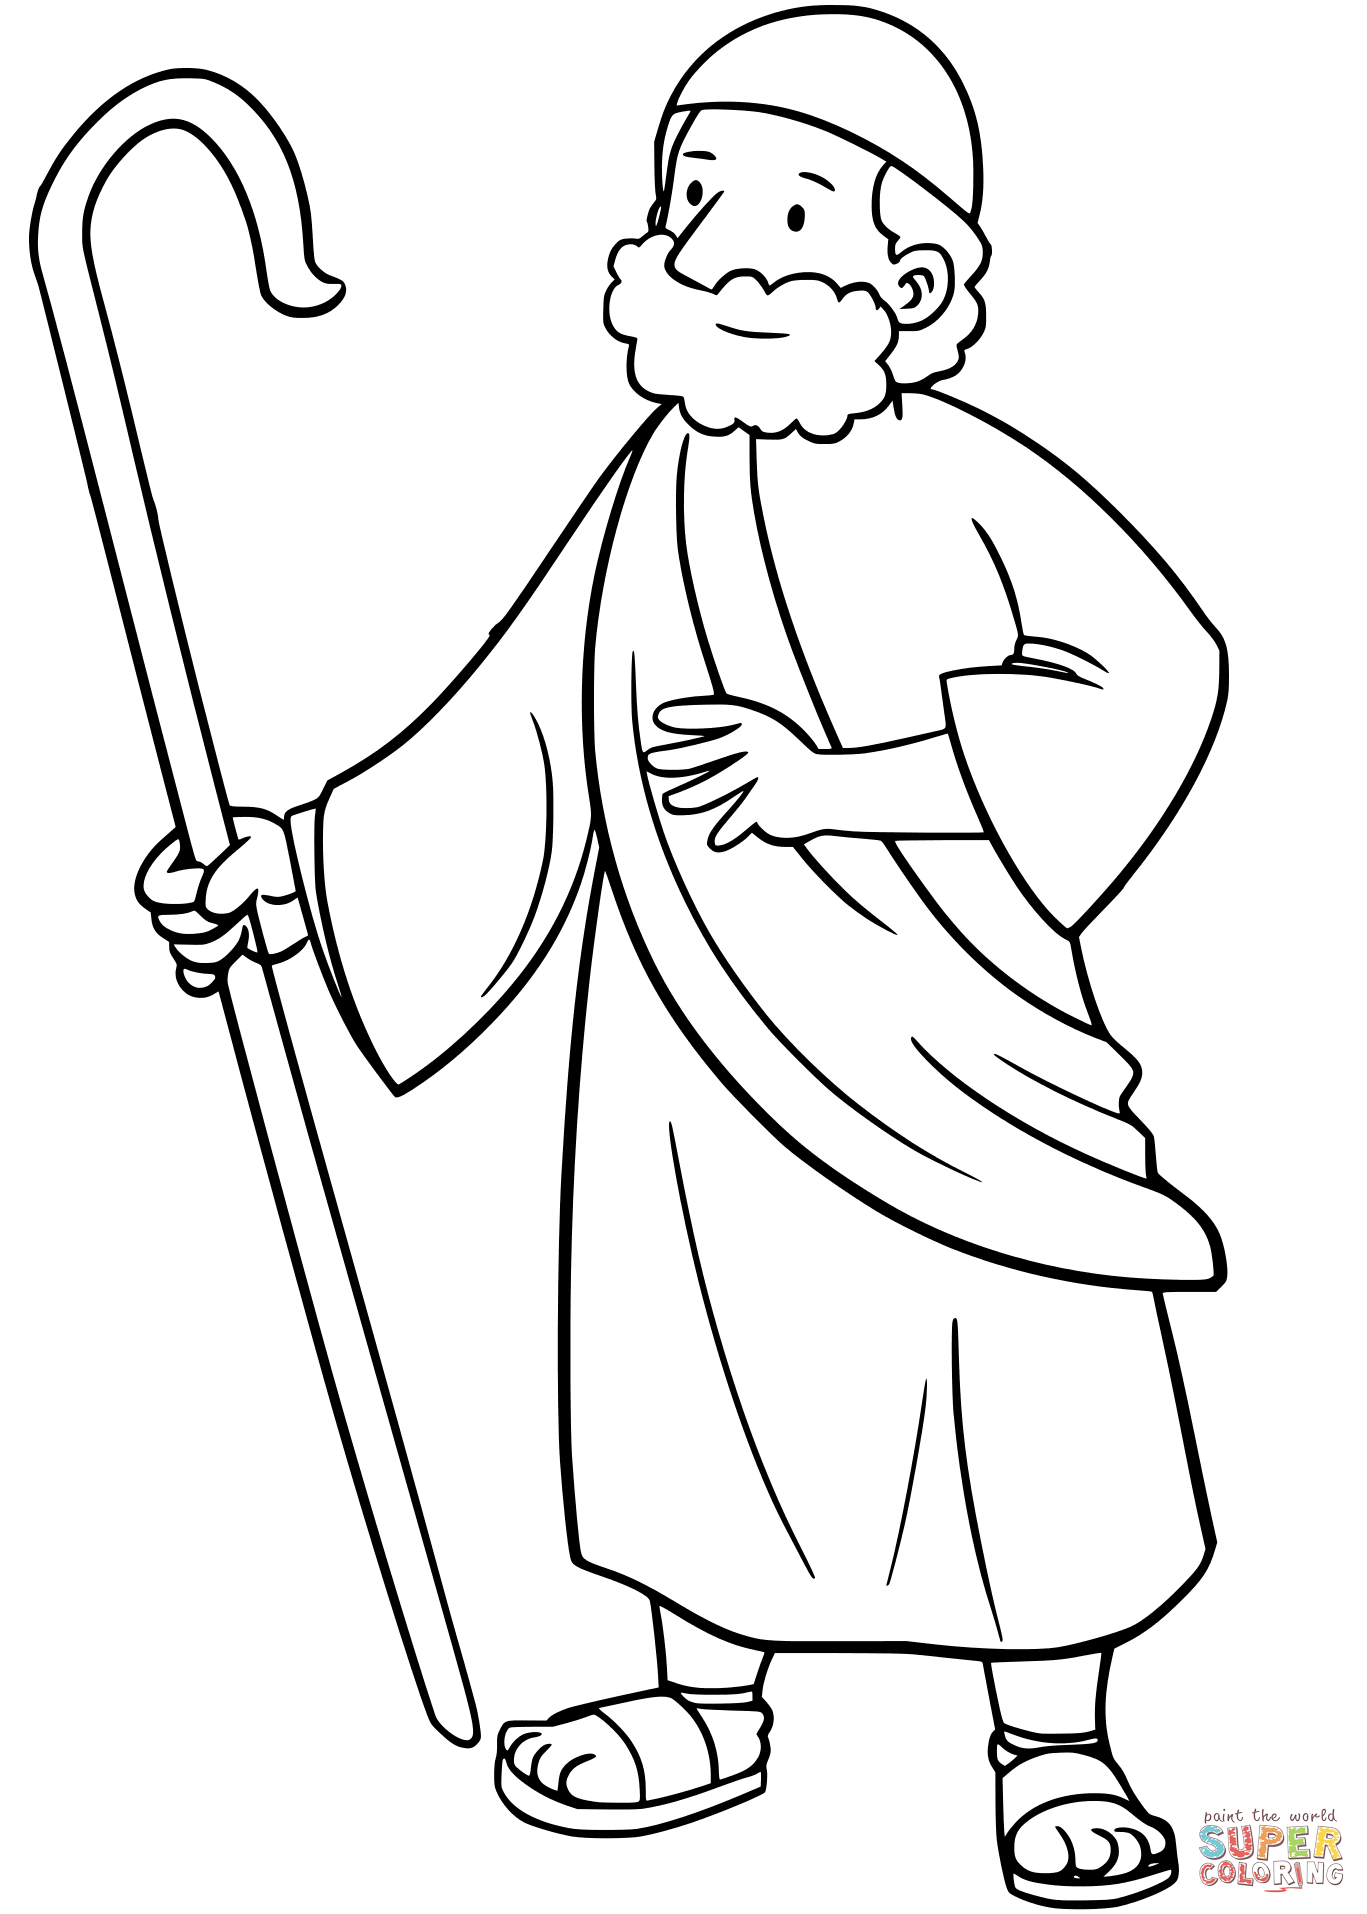 easy bible coloring pages pin on htv vinyl ideas easy pages bible coloring